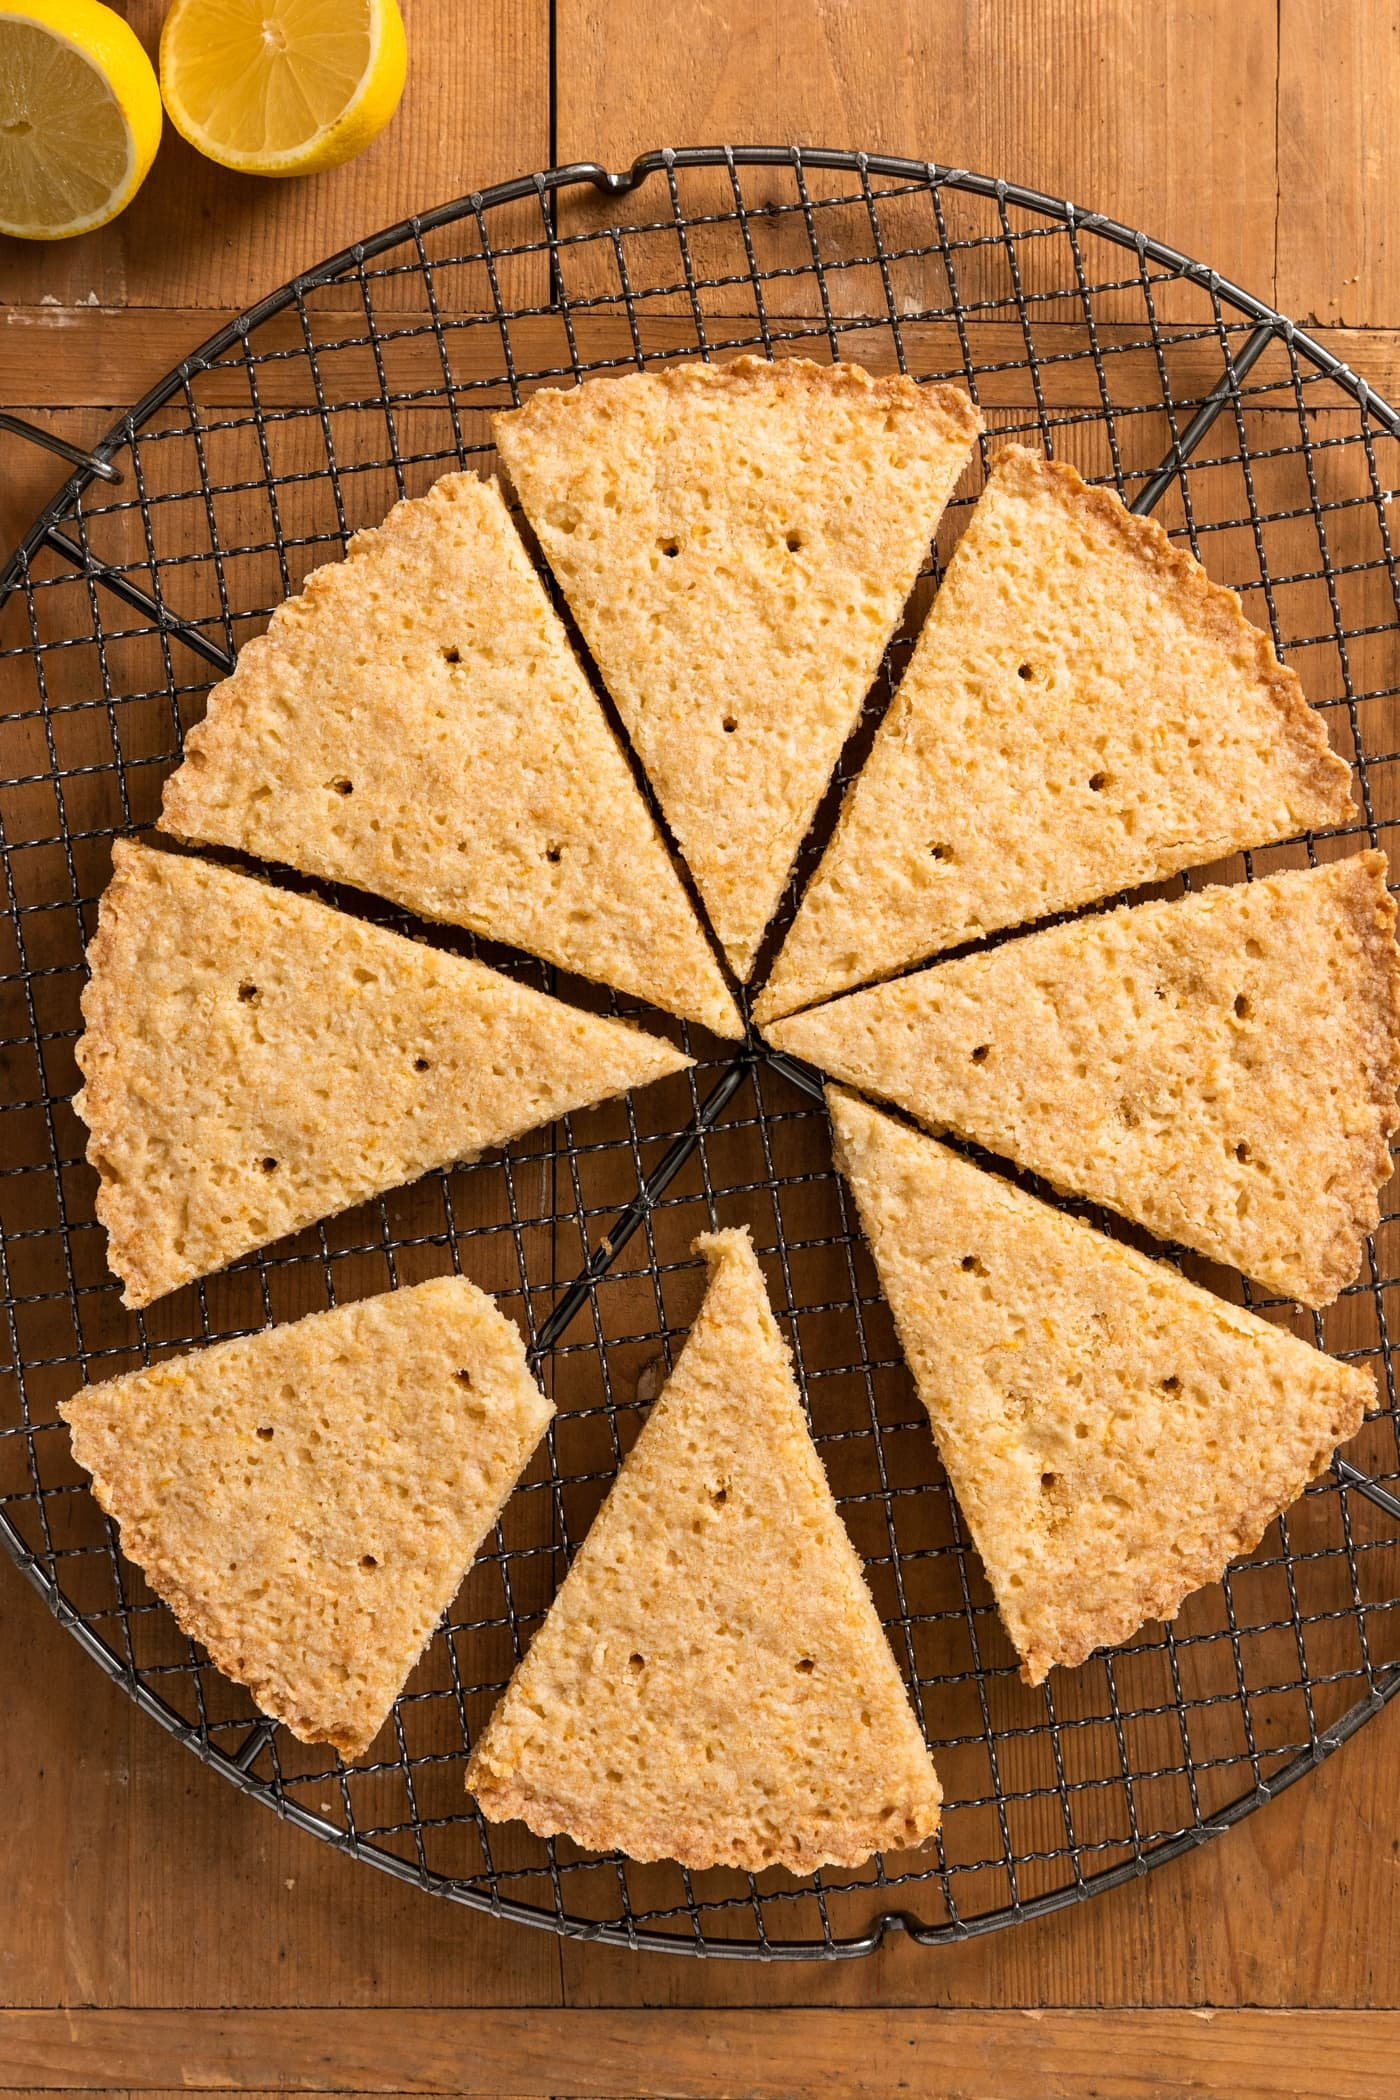 Top down view of triangle-shaped lemon shortbread cookies sitting on wire cooling rack all on wood surface